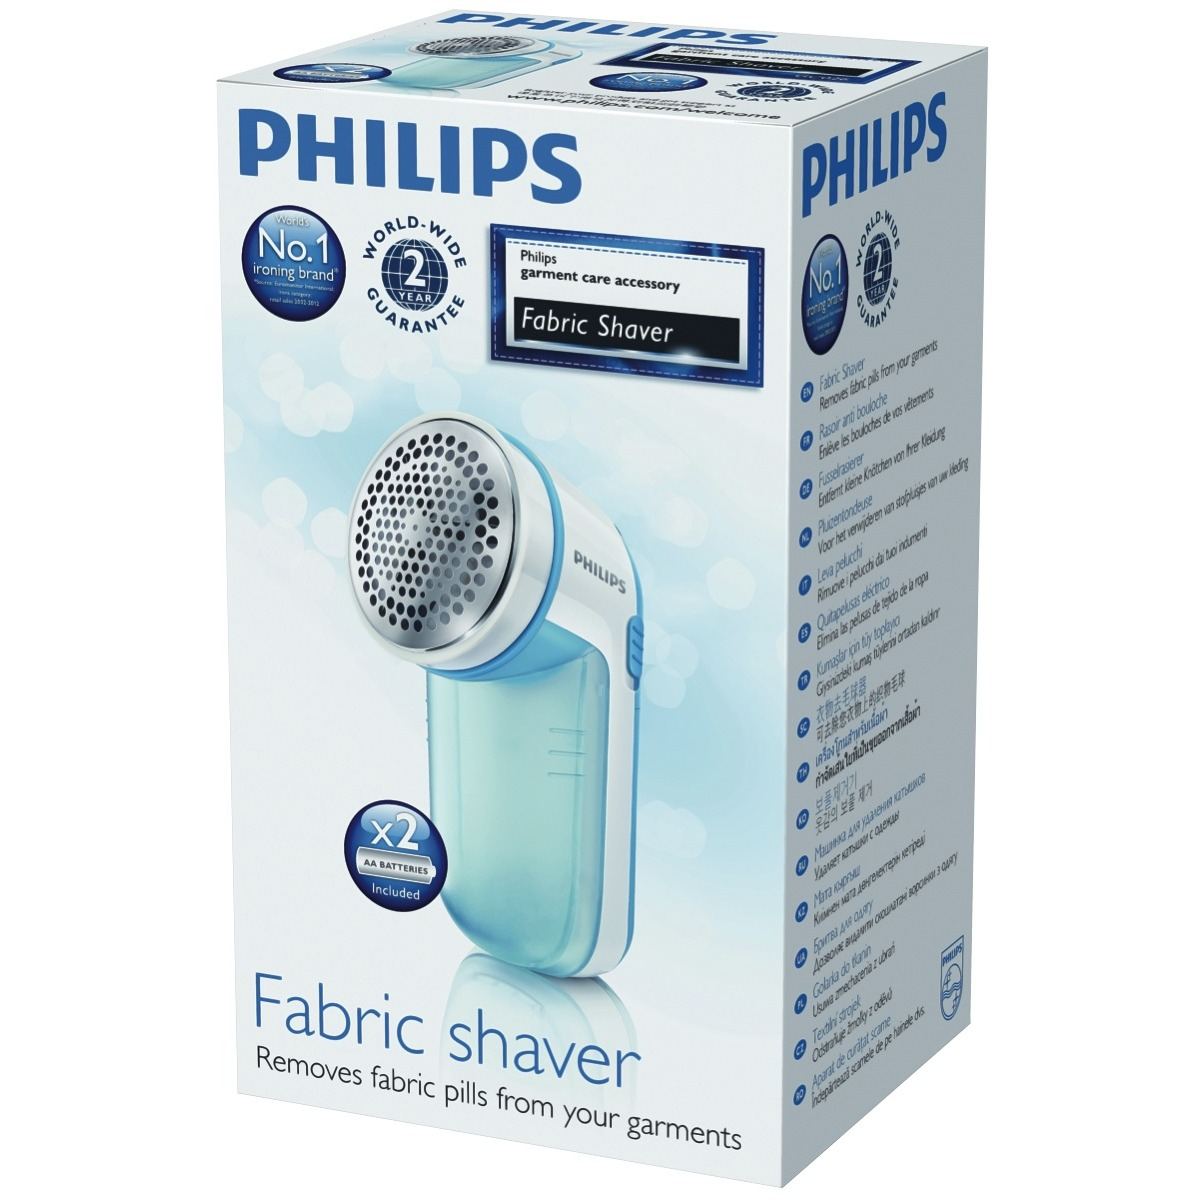 2.Philips GC026-00